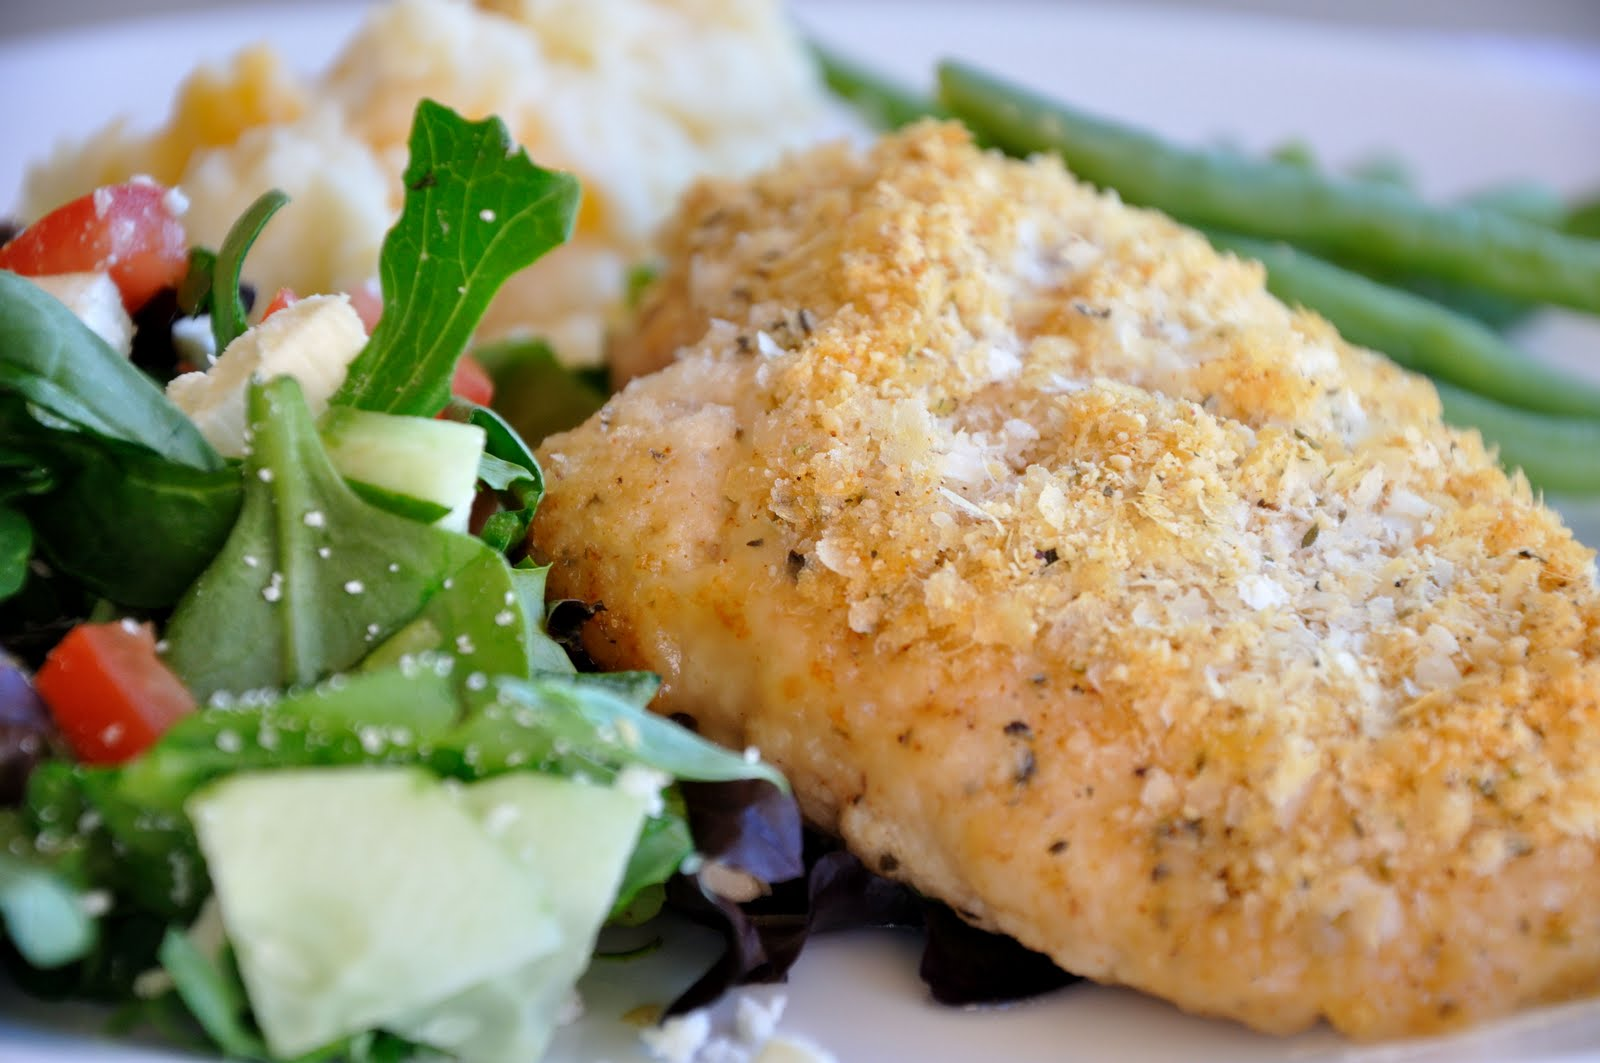 Gluten Free Goodness: Crispy Herb Baked Chicken